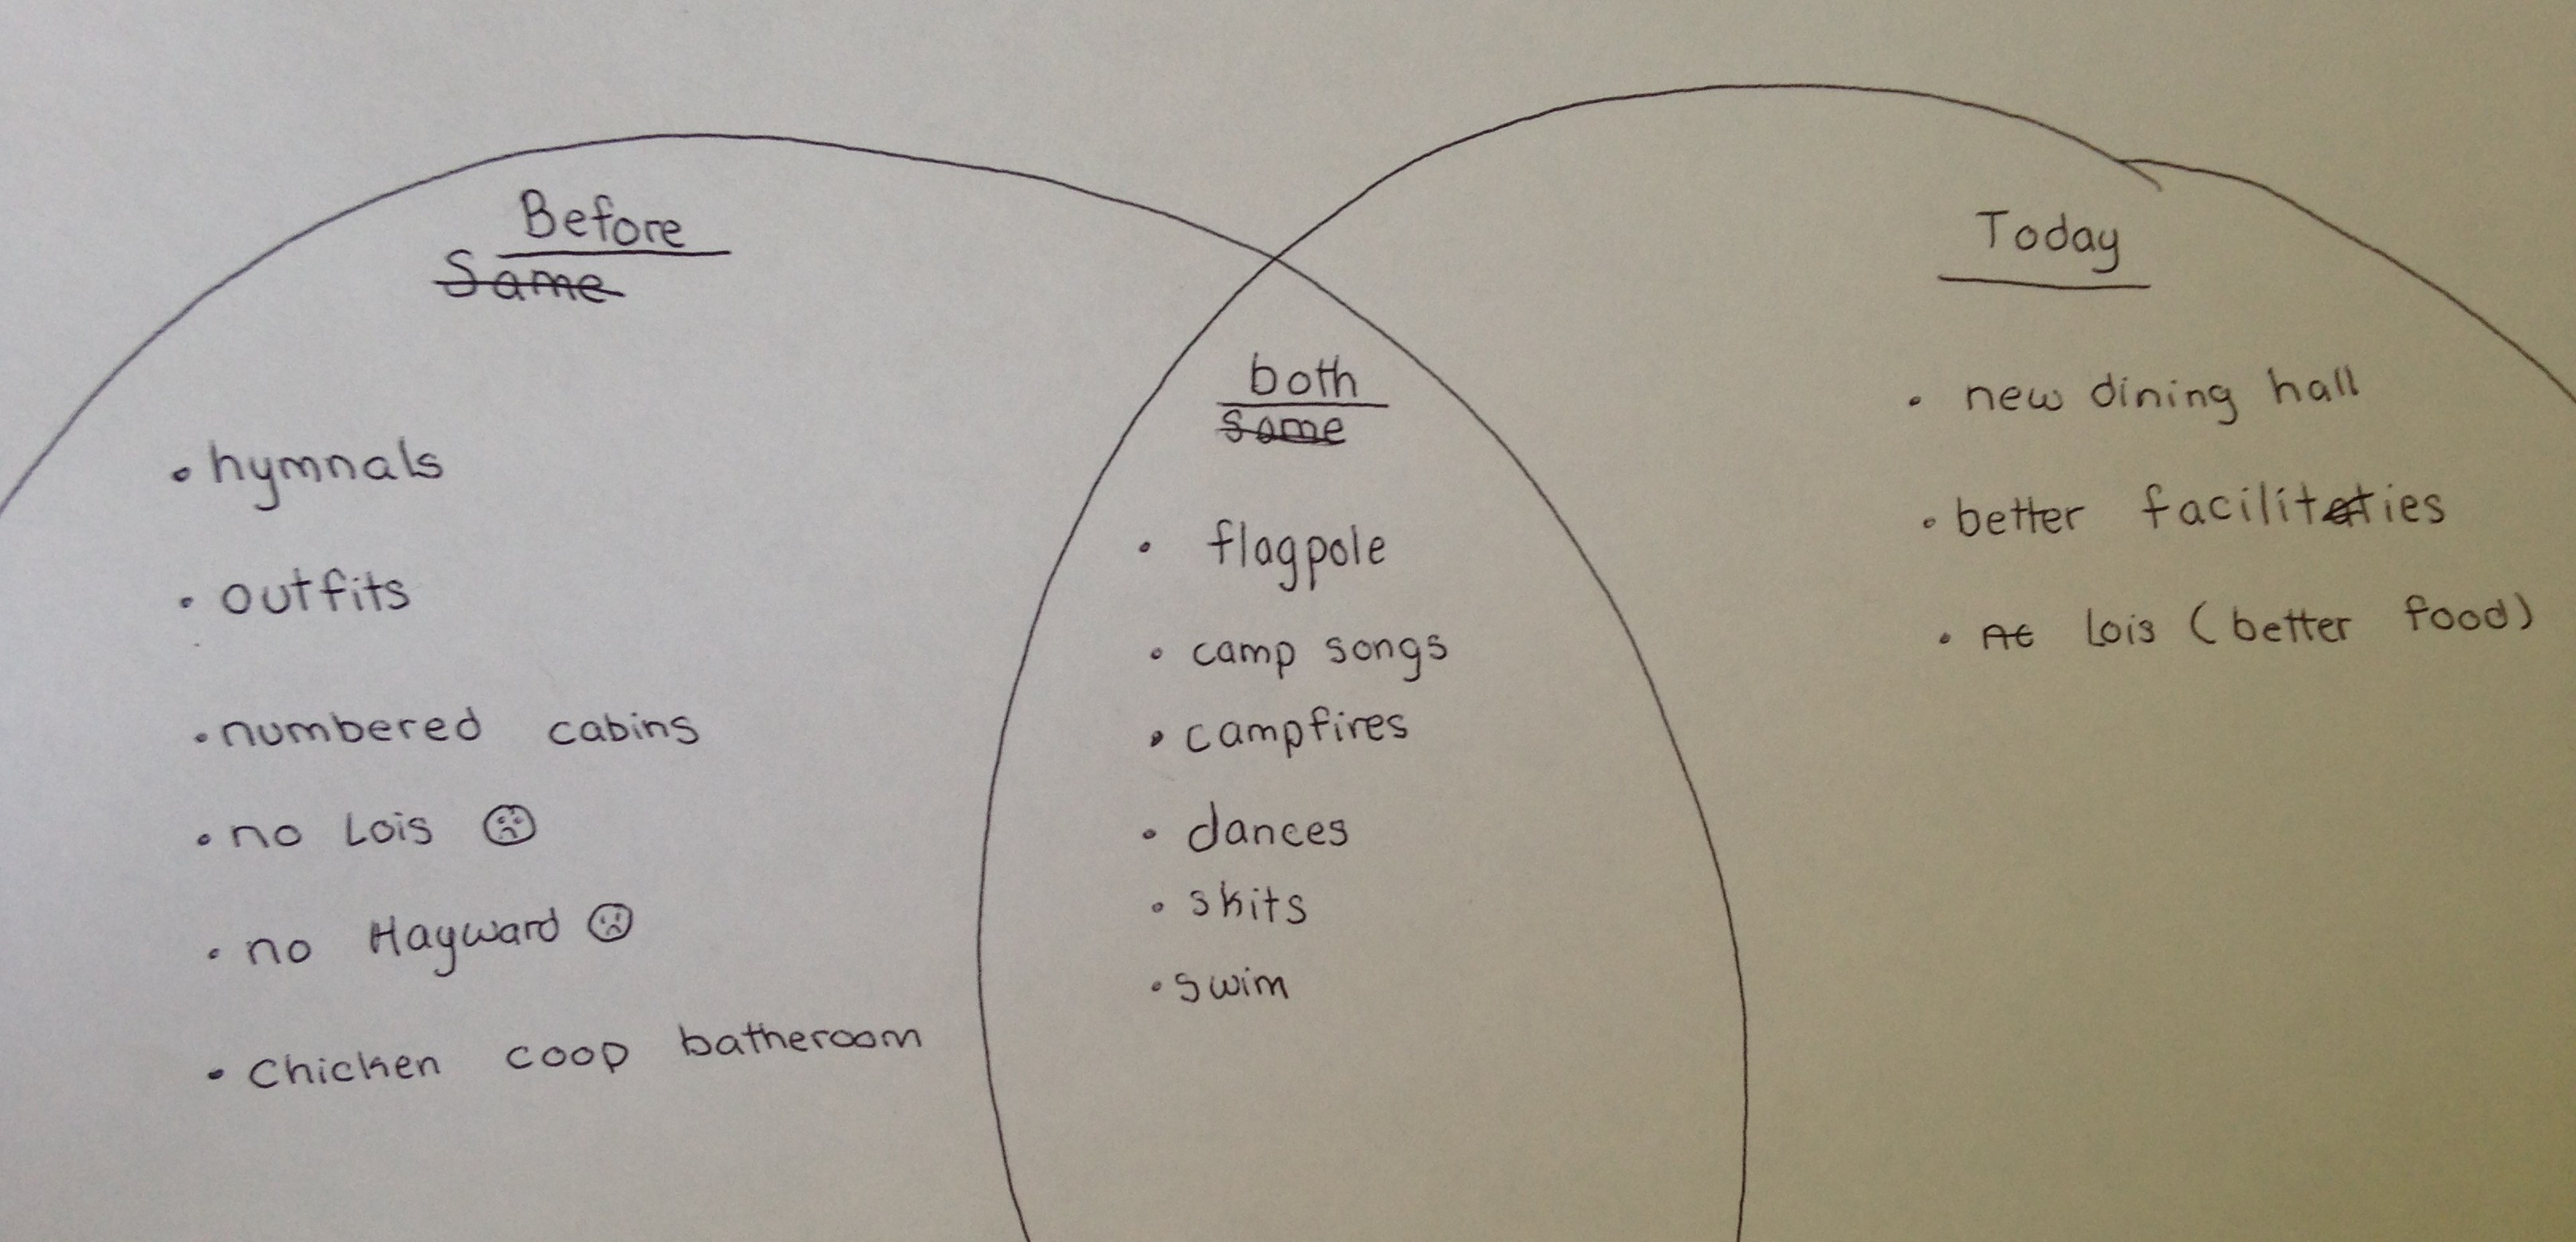 Born bred camp burgess hayward other campers chose to express the changes they saw in diagrams and poems here is a venn diagram of the similarities and differences between camp today and pooptronica